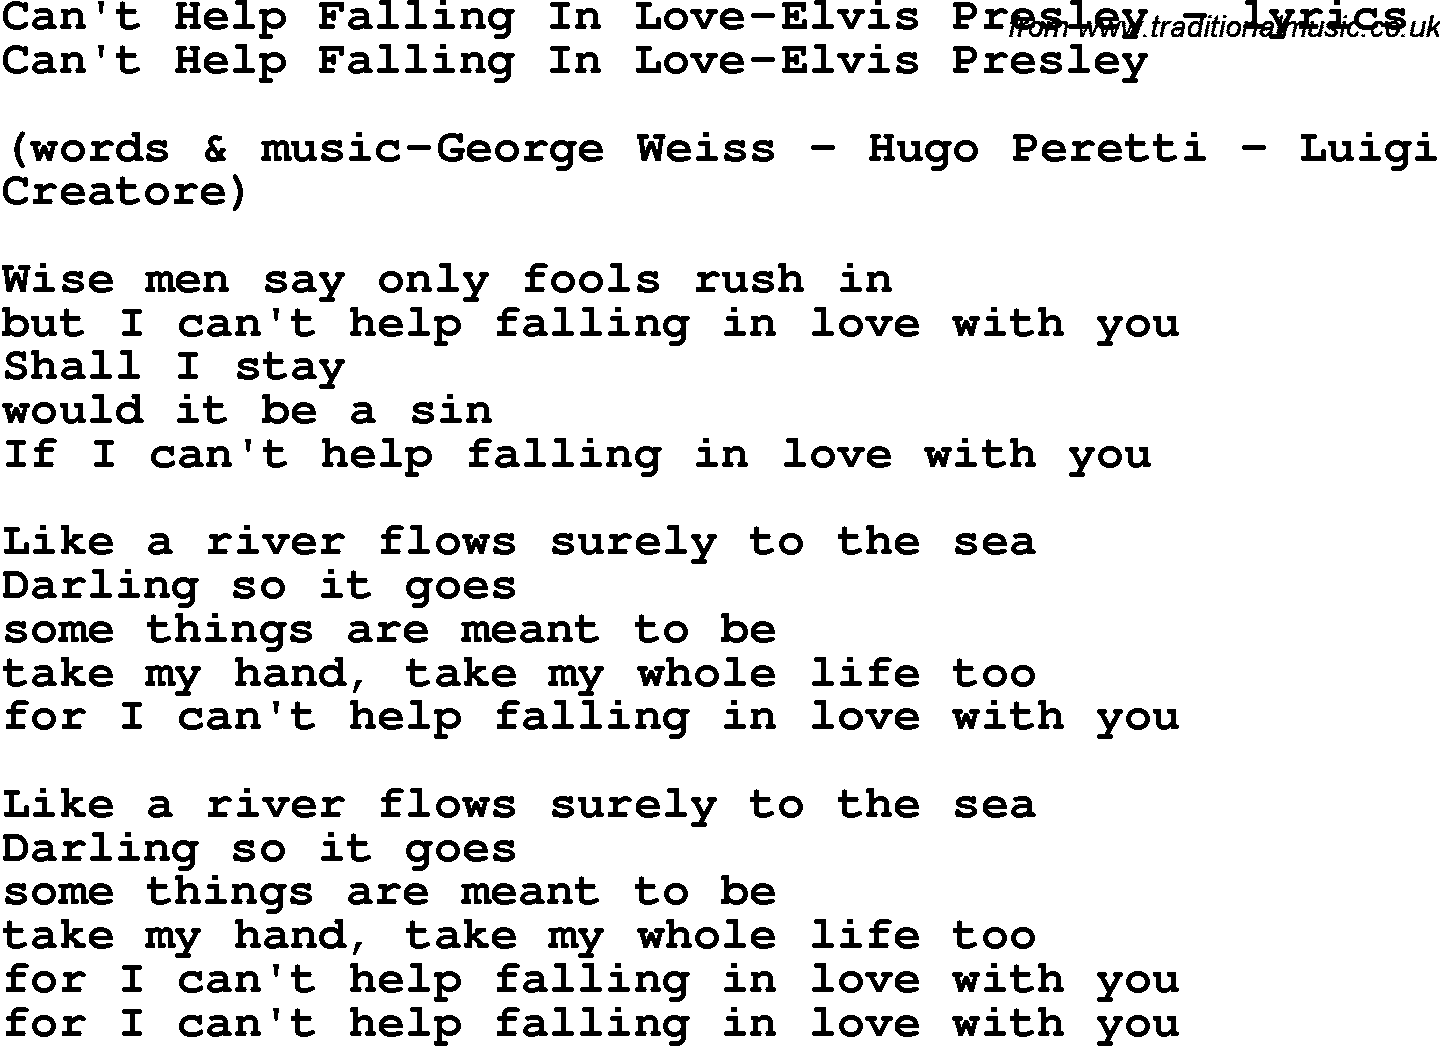 Elvis presley falling in love with you lyrics